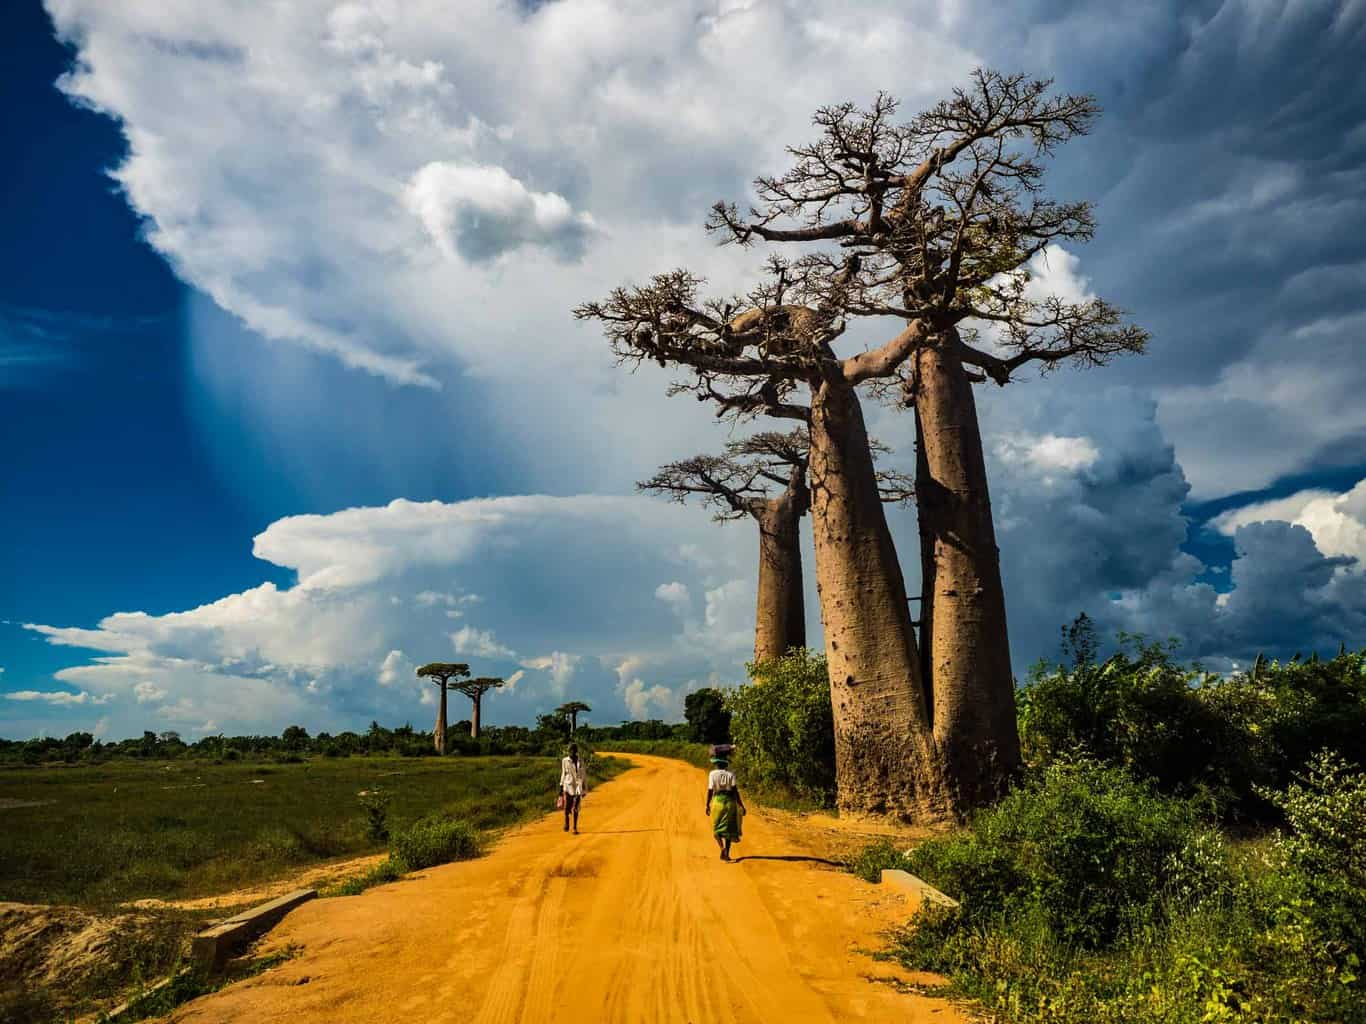 One of the first view you will get of Baobabs trees, these ones are called the Twin baobabs